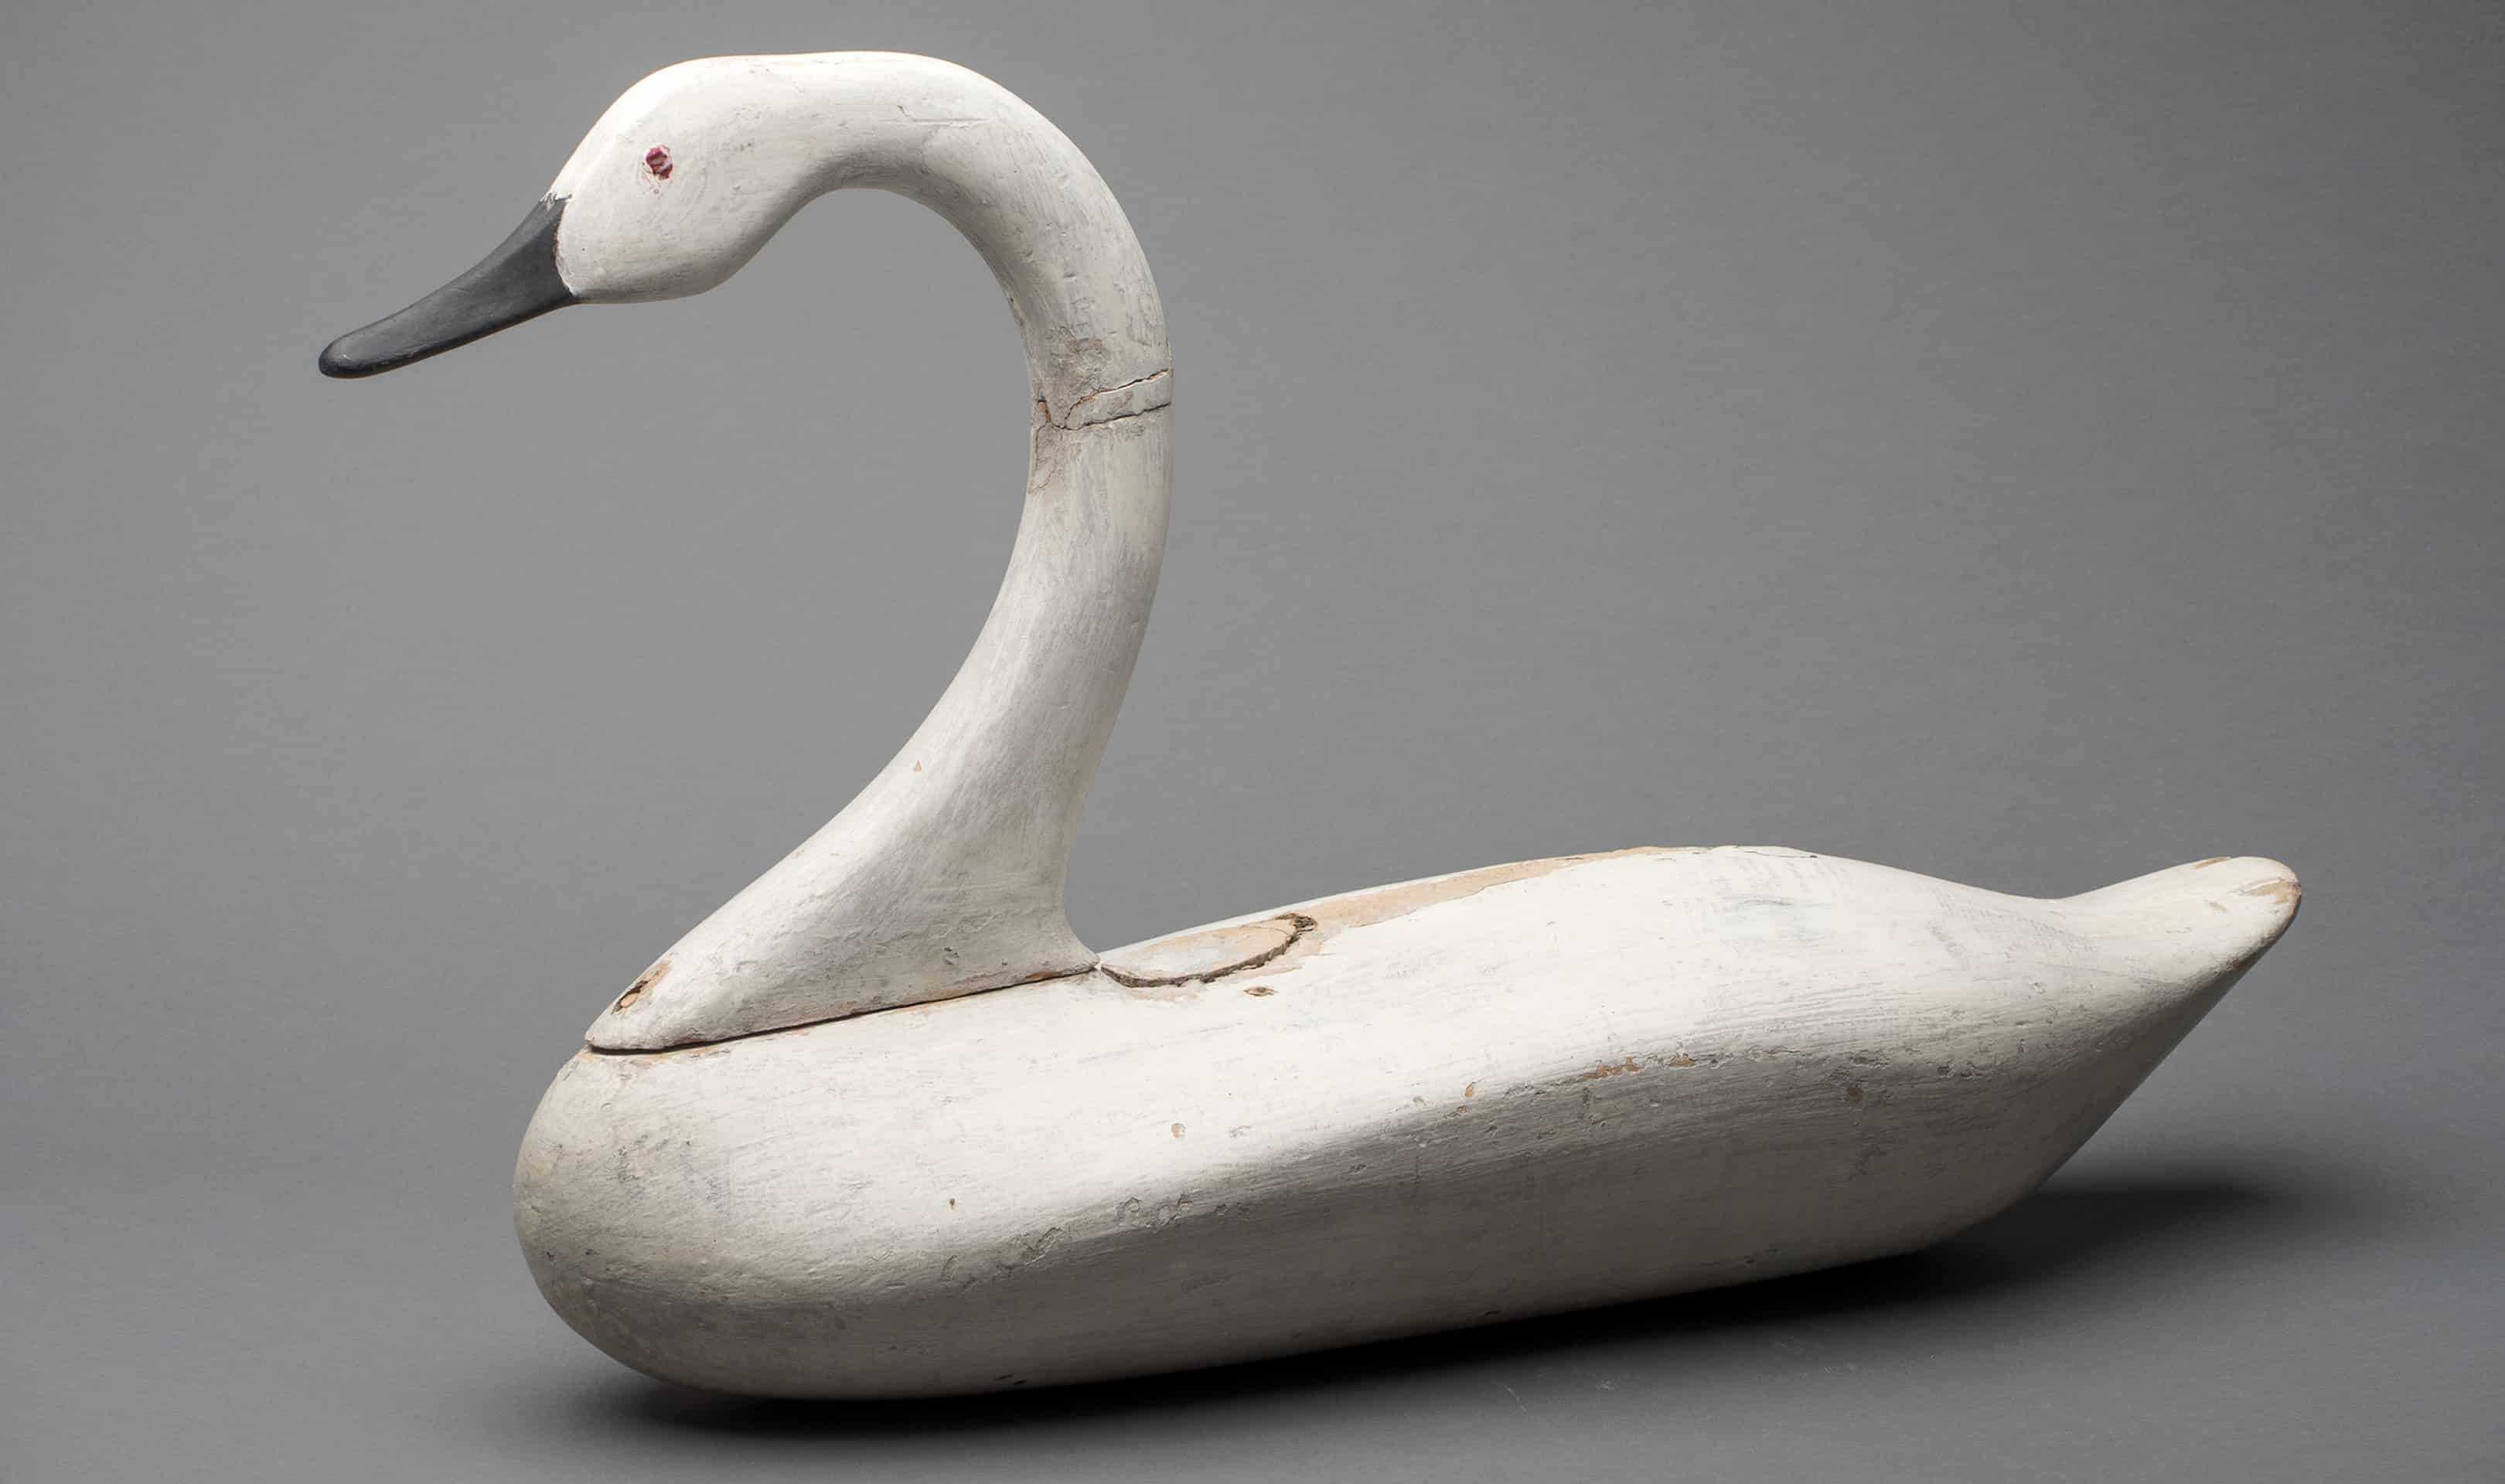 Exhibition: Deconstructing Decoys